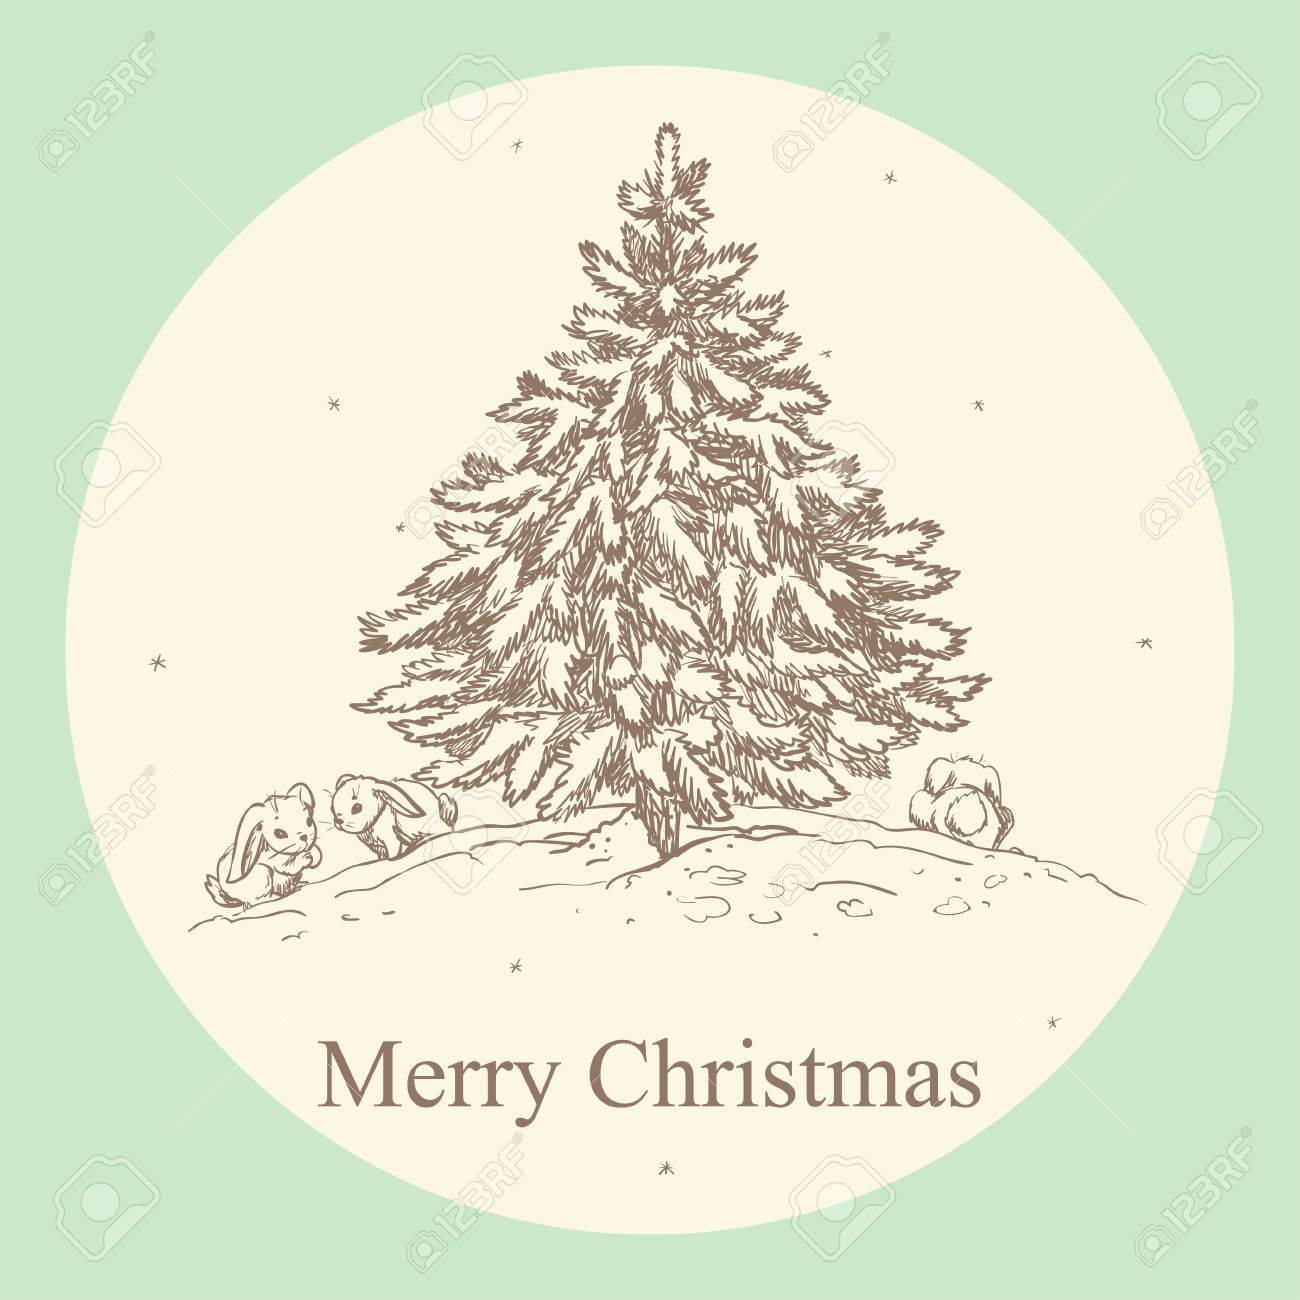 Vintage Christmas Card With Hand Drawn Christmas Tree Royalty Free Cliparts Vectors And Stock Illustration Image 44411877